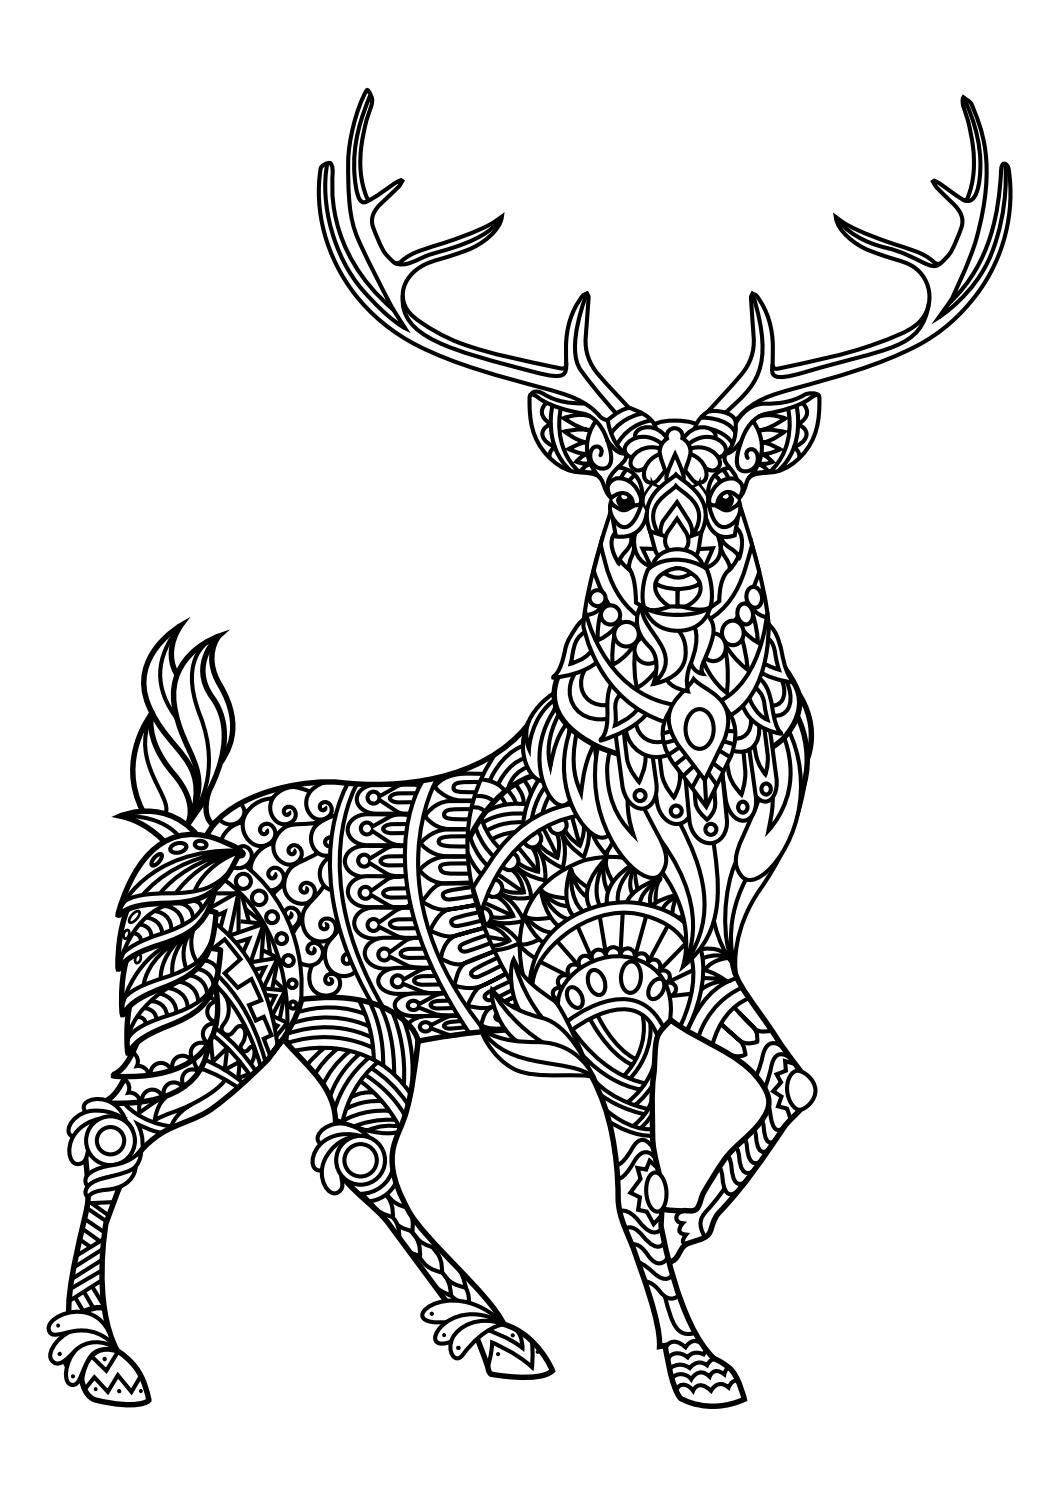 animal coloring pages pdf coloring animals deer coloring pages printable adult coloring. Black Bedroom Furniture Sets. Home Design Ideas